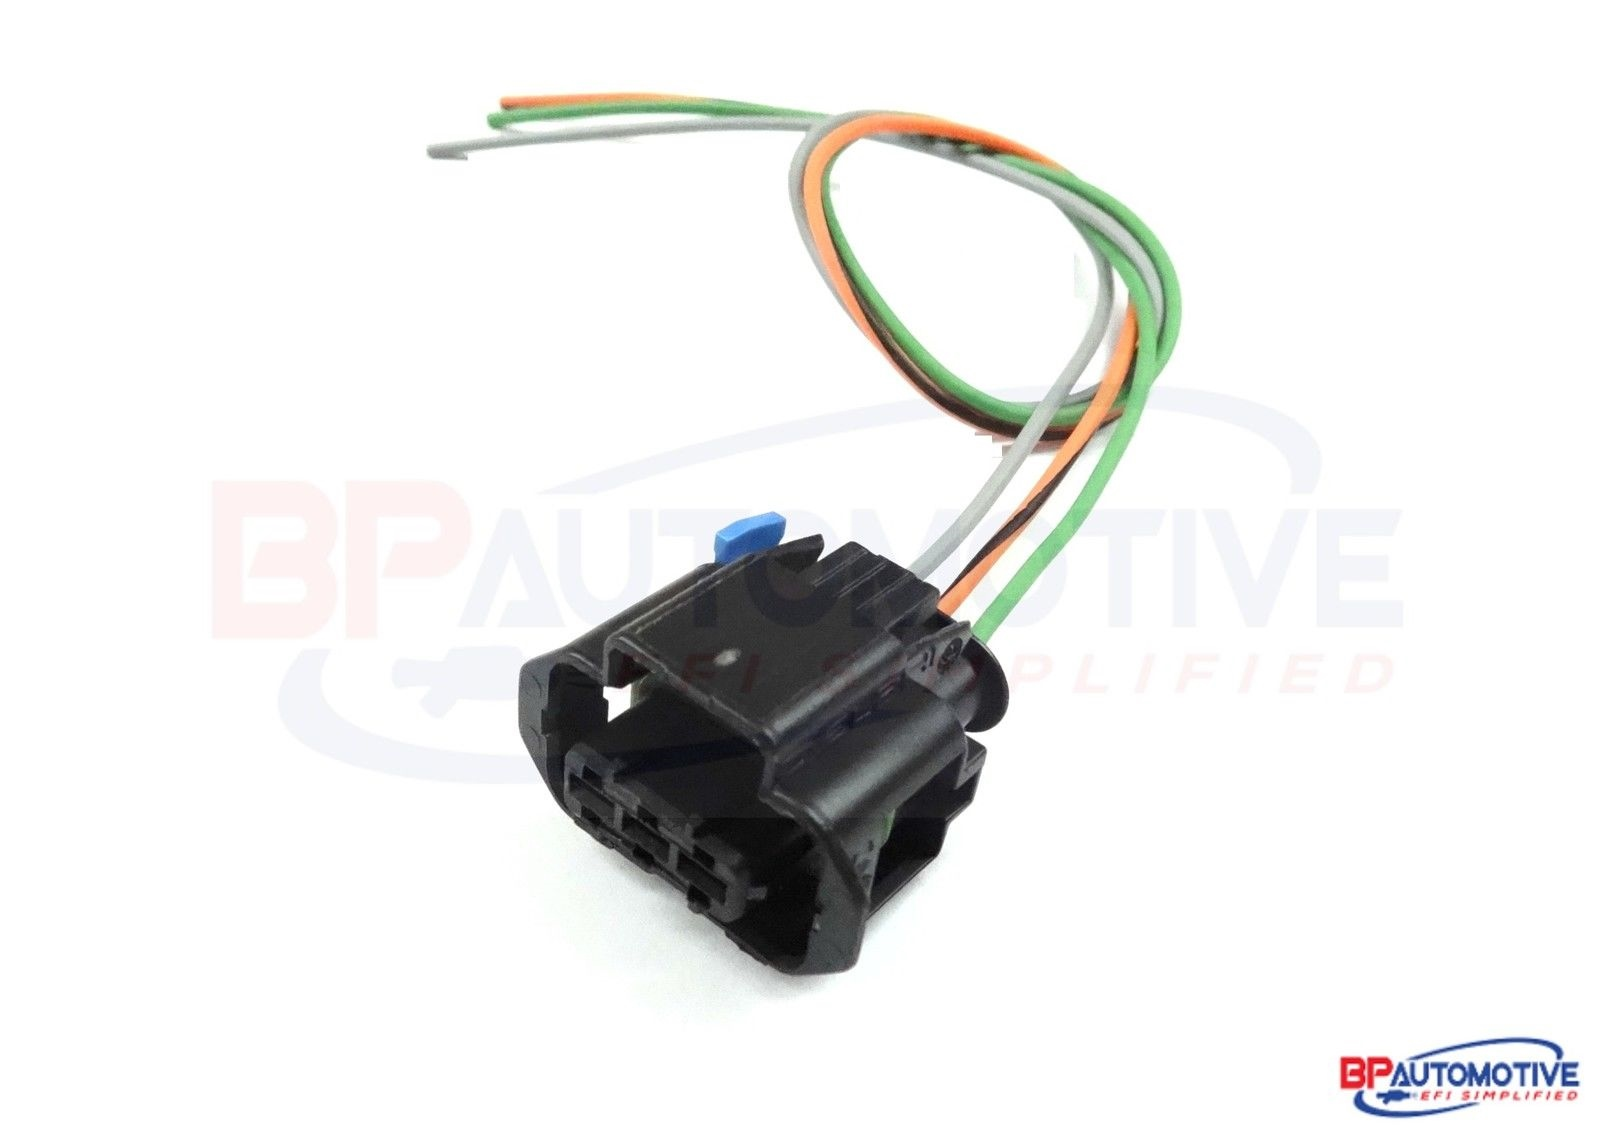 hight resolution of ls3 l99 l76 lsa ls9 map sensor pigtail ebay map sensor pigtail wiring diagram